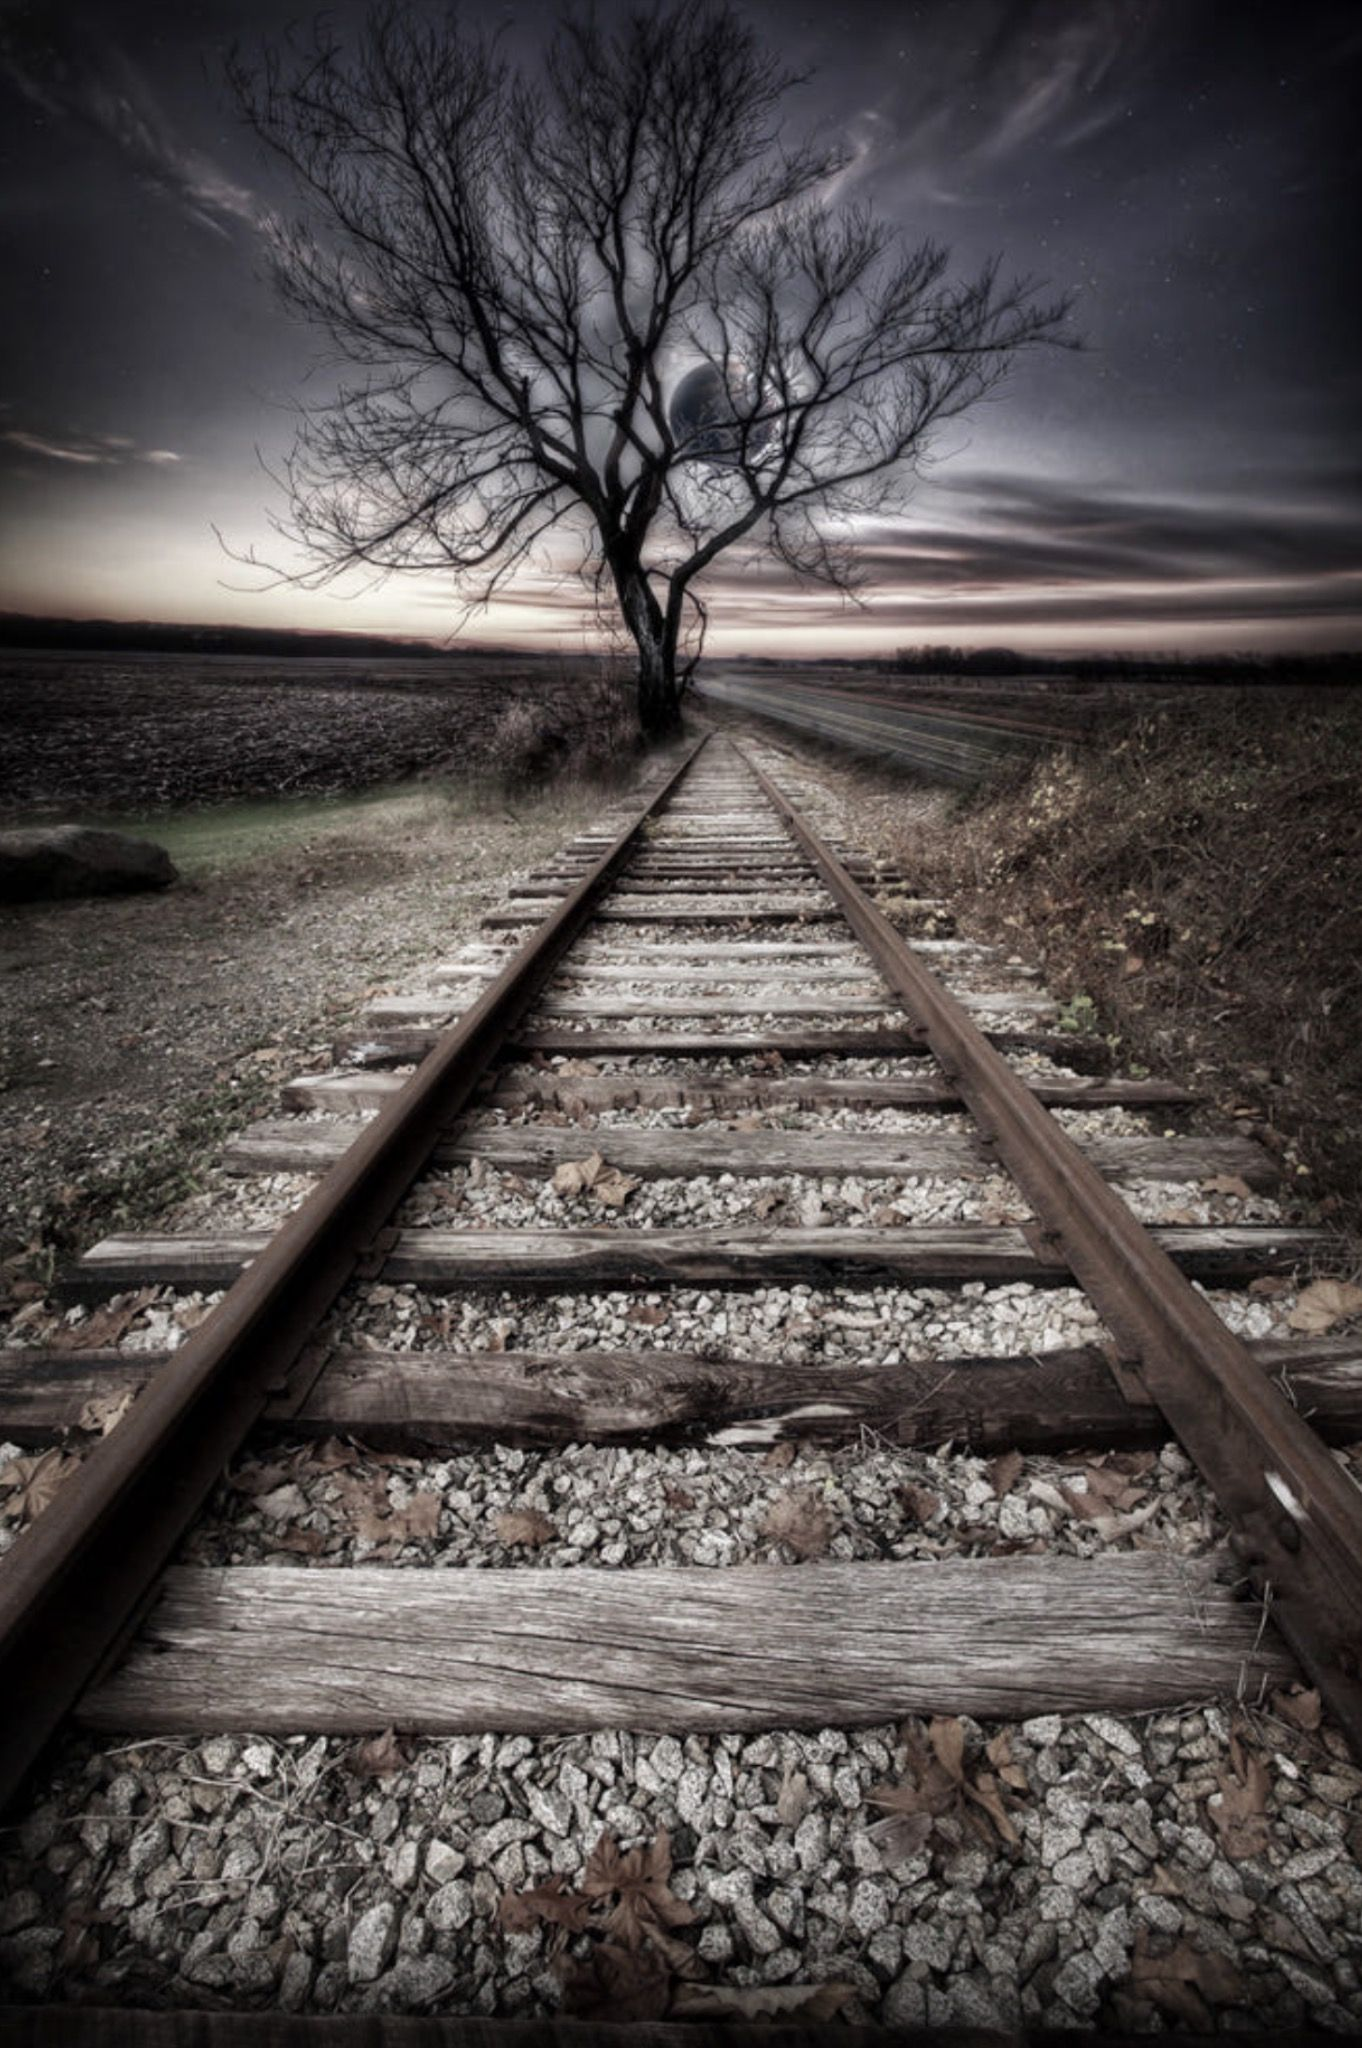 traintrackeclipse. Photo by Todd Wall. Source 500px.com